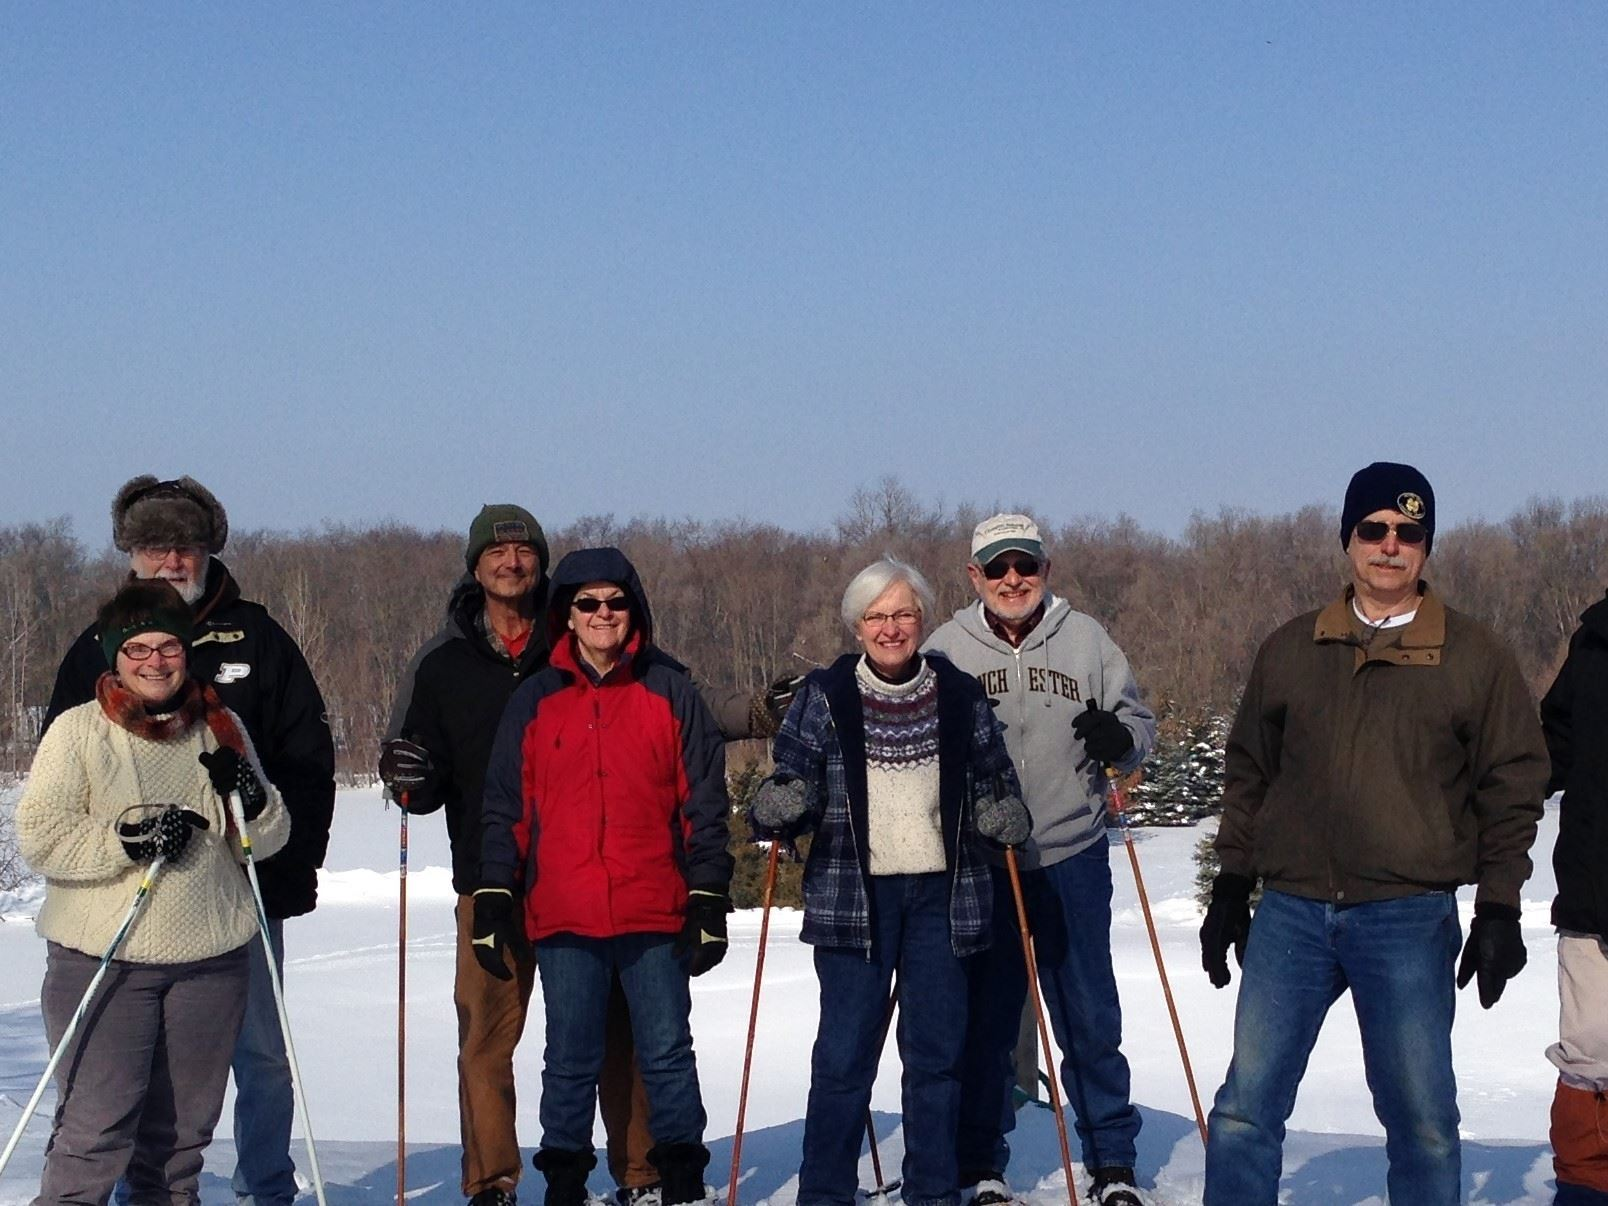 Boomers enjoy outdoor exercise in snow